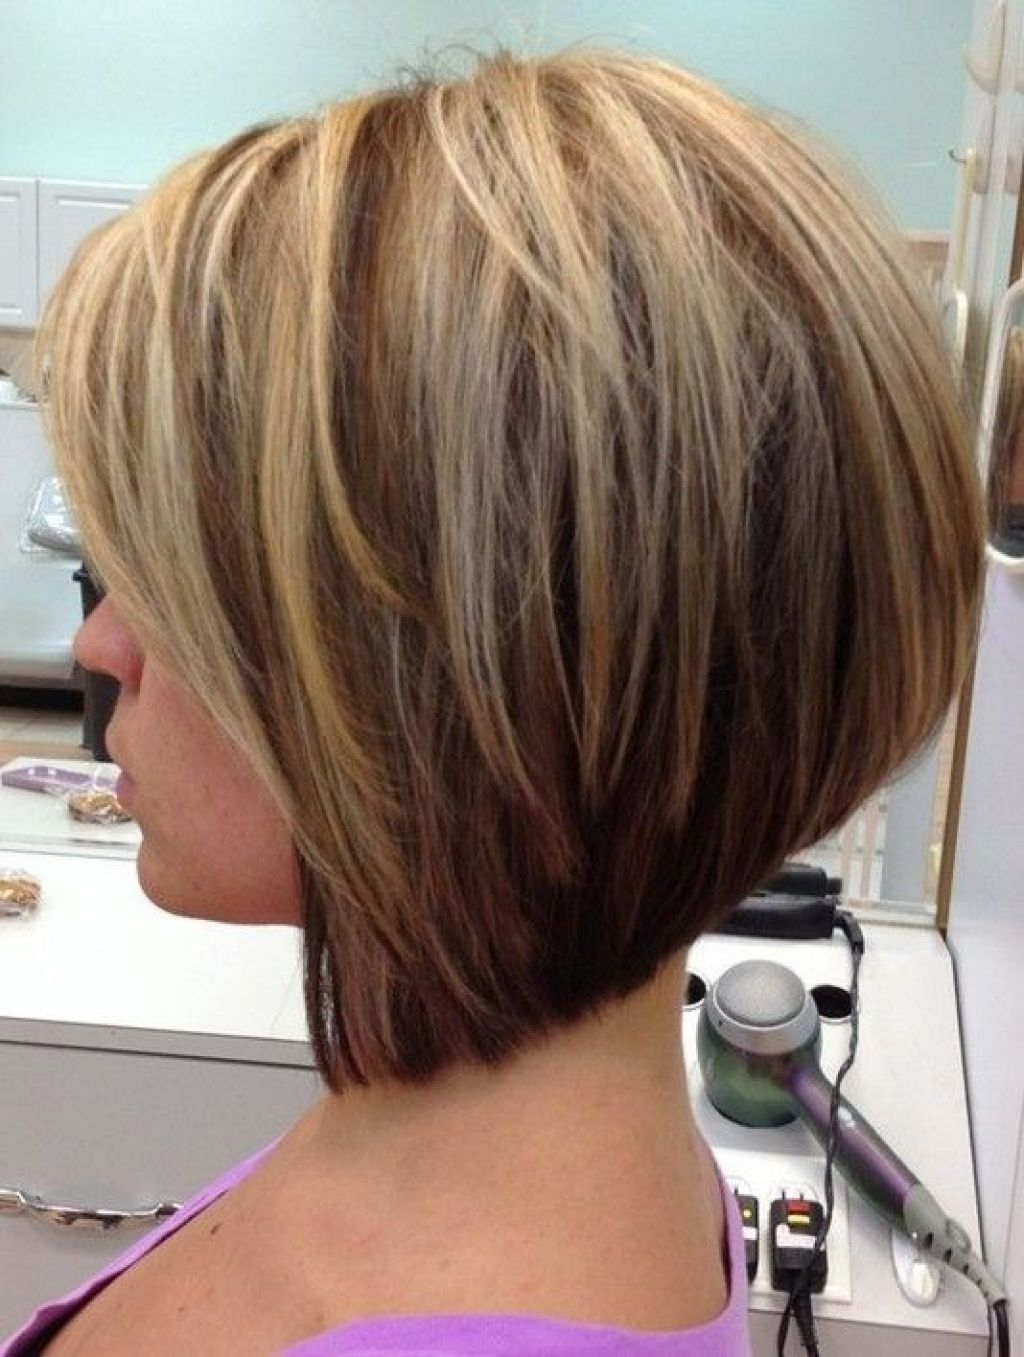 Women Inverted Bob Hairstyles Hairstyle Super Hot Stacked Bob Regarding Inverted Short Haircuts (View 22 of 25)